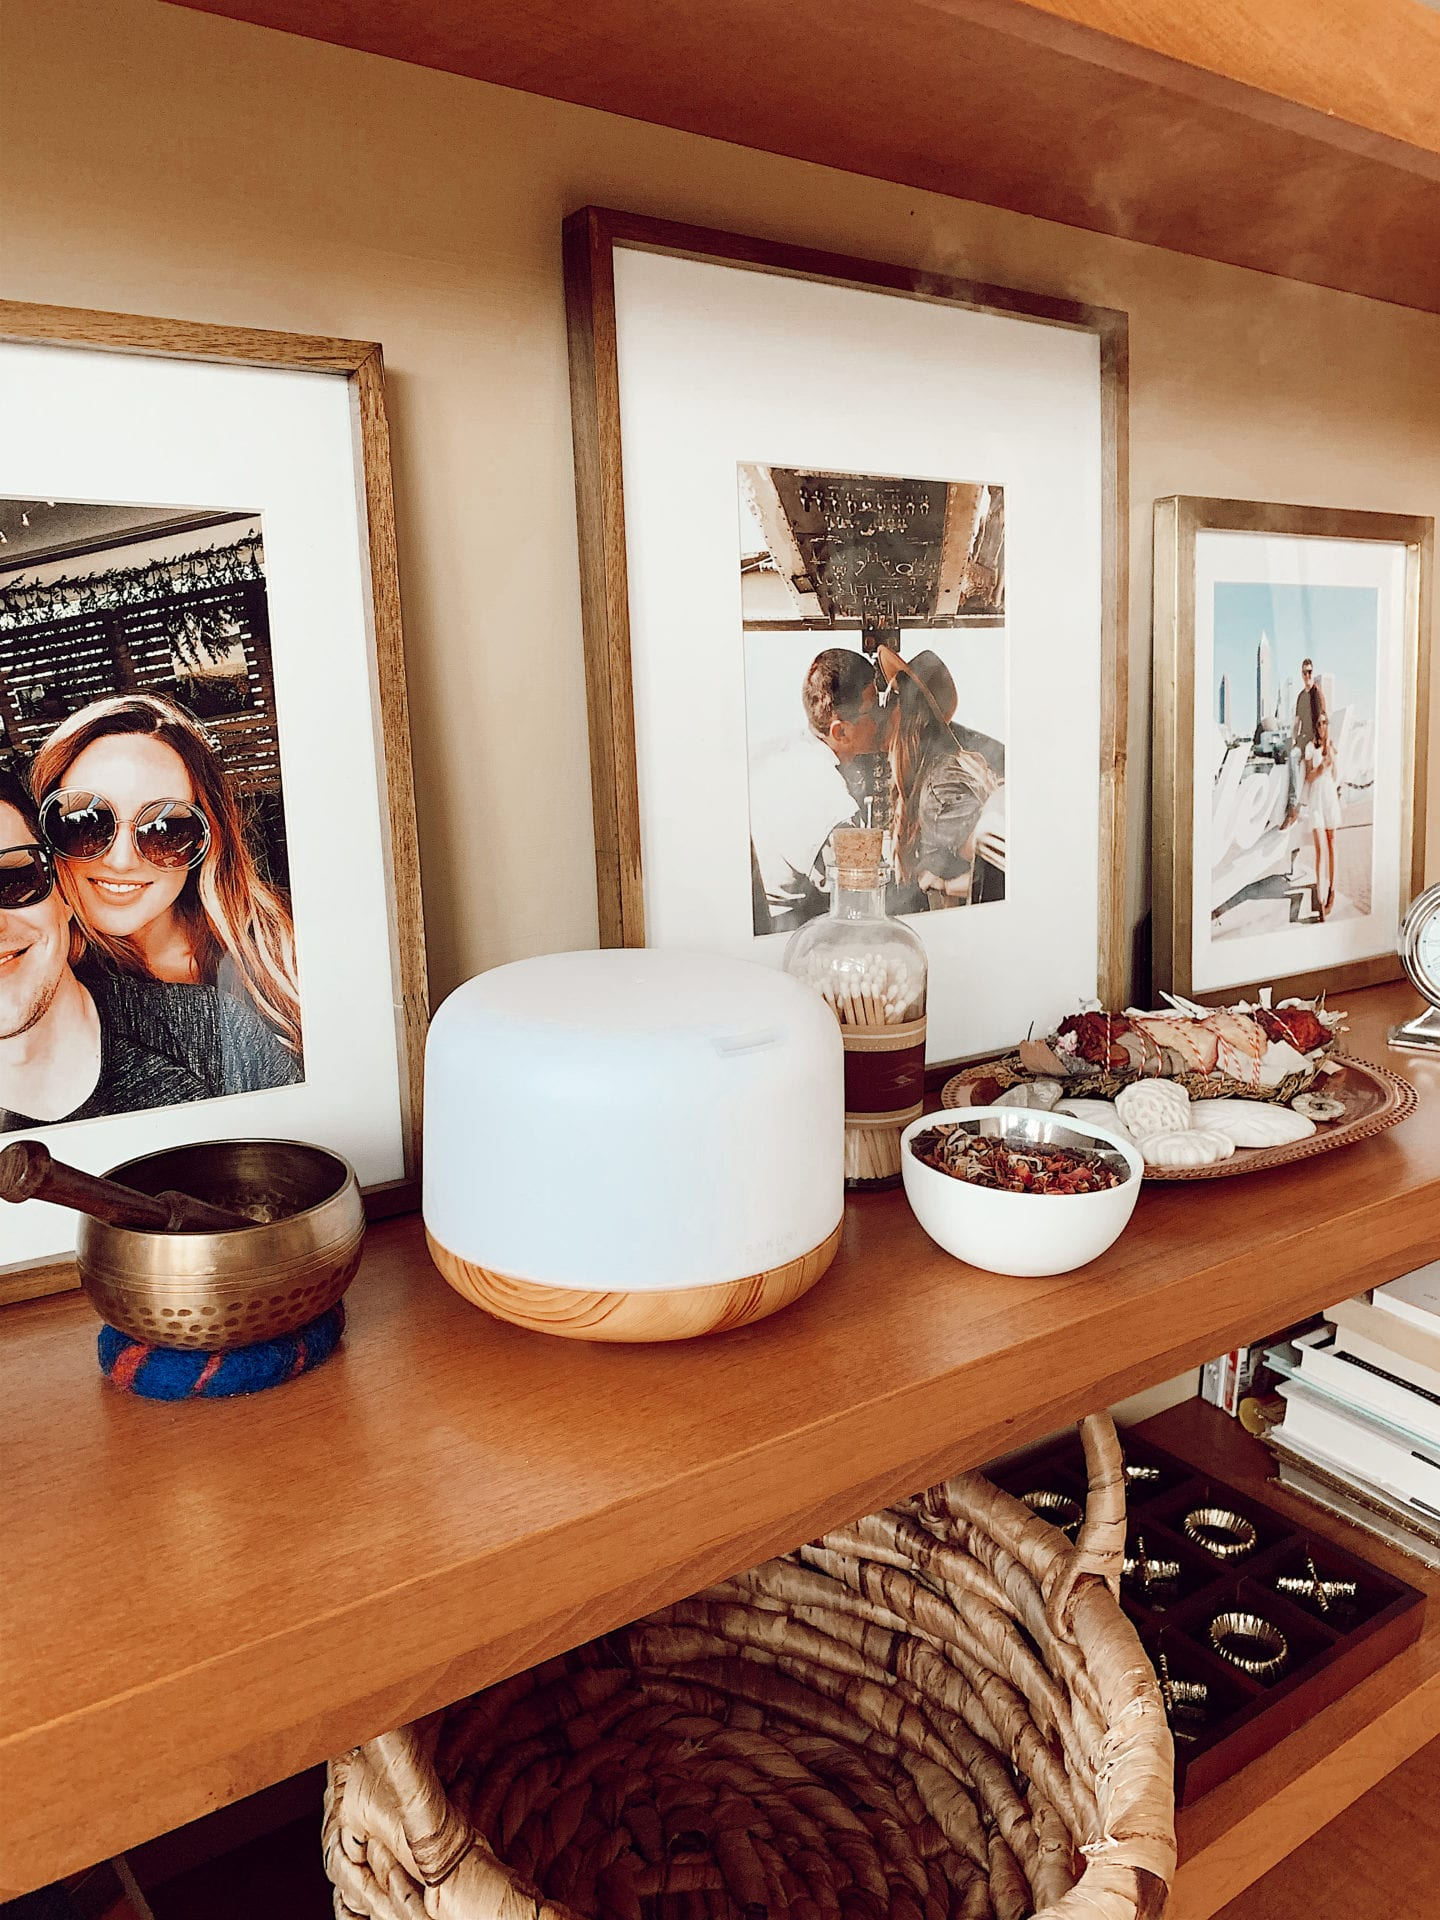 Essential Oil Diffuser Combos by popular San Francisco lifestyle blog, Just Add Glam: image of a essential oil diffusers on a shelf next to framed pictures, a woven basket and a dish full of seashells.